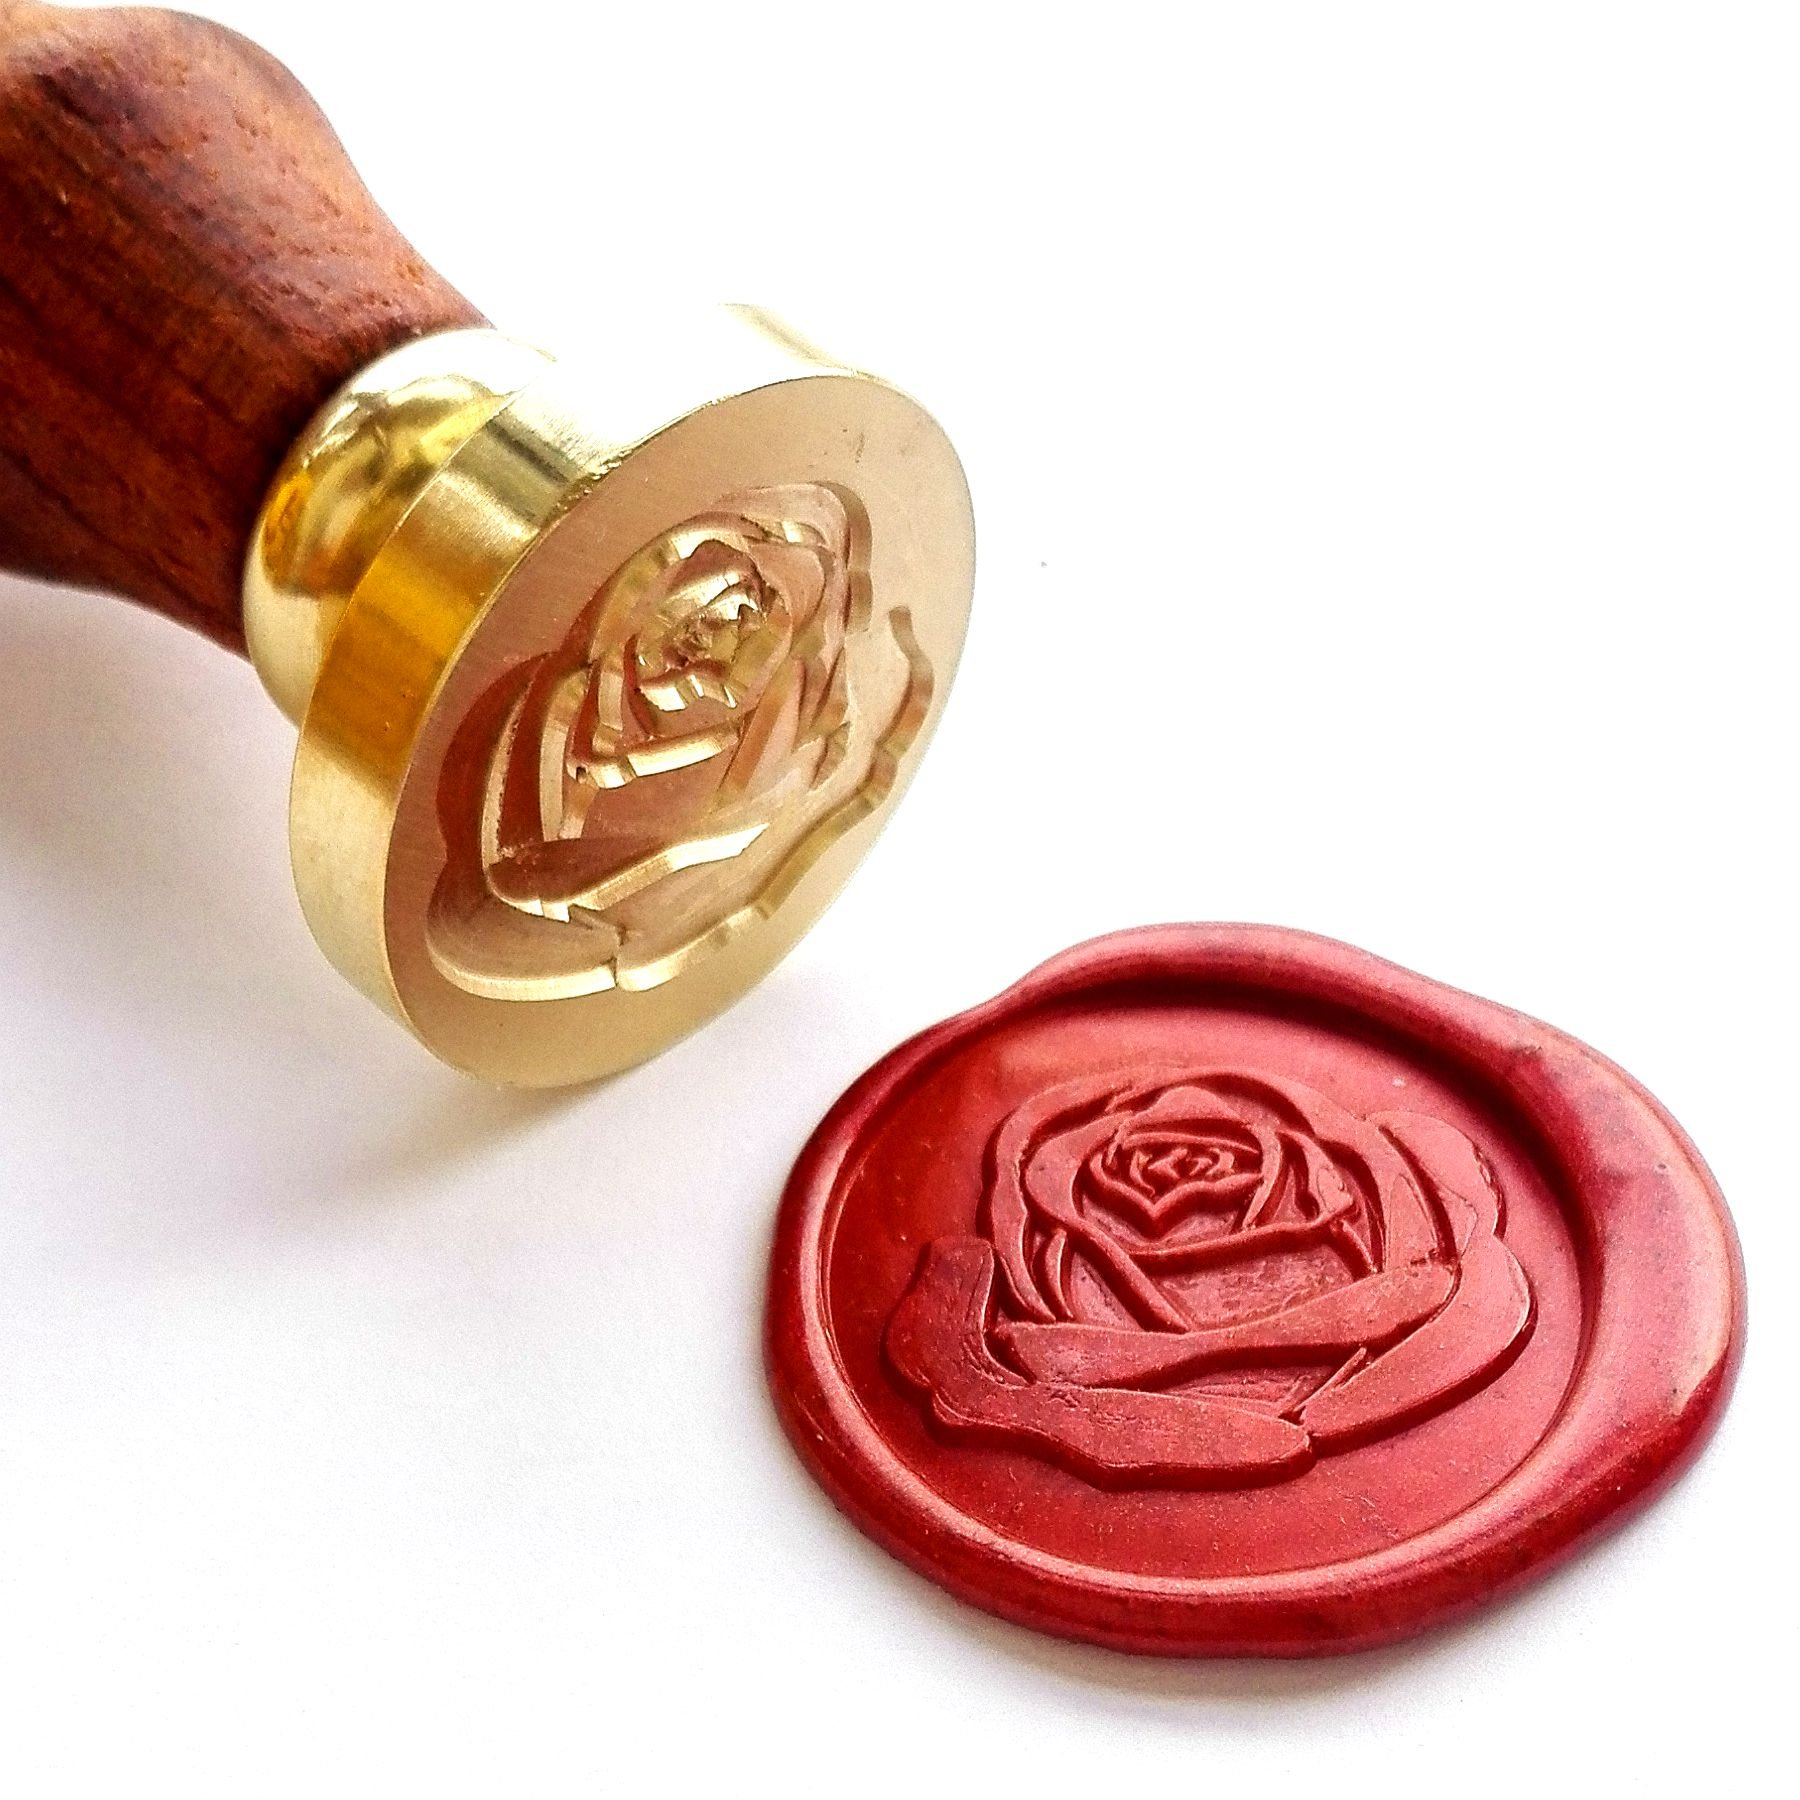 Vooseyhome The Rose Wax Seal Stamp with Rosewood Handle - Ideal for Decorating Gift Packing, Envelopes, Parcels, Parties, Weddings, Invitations, Cards, Signature and Everything You Like!